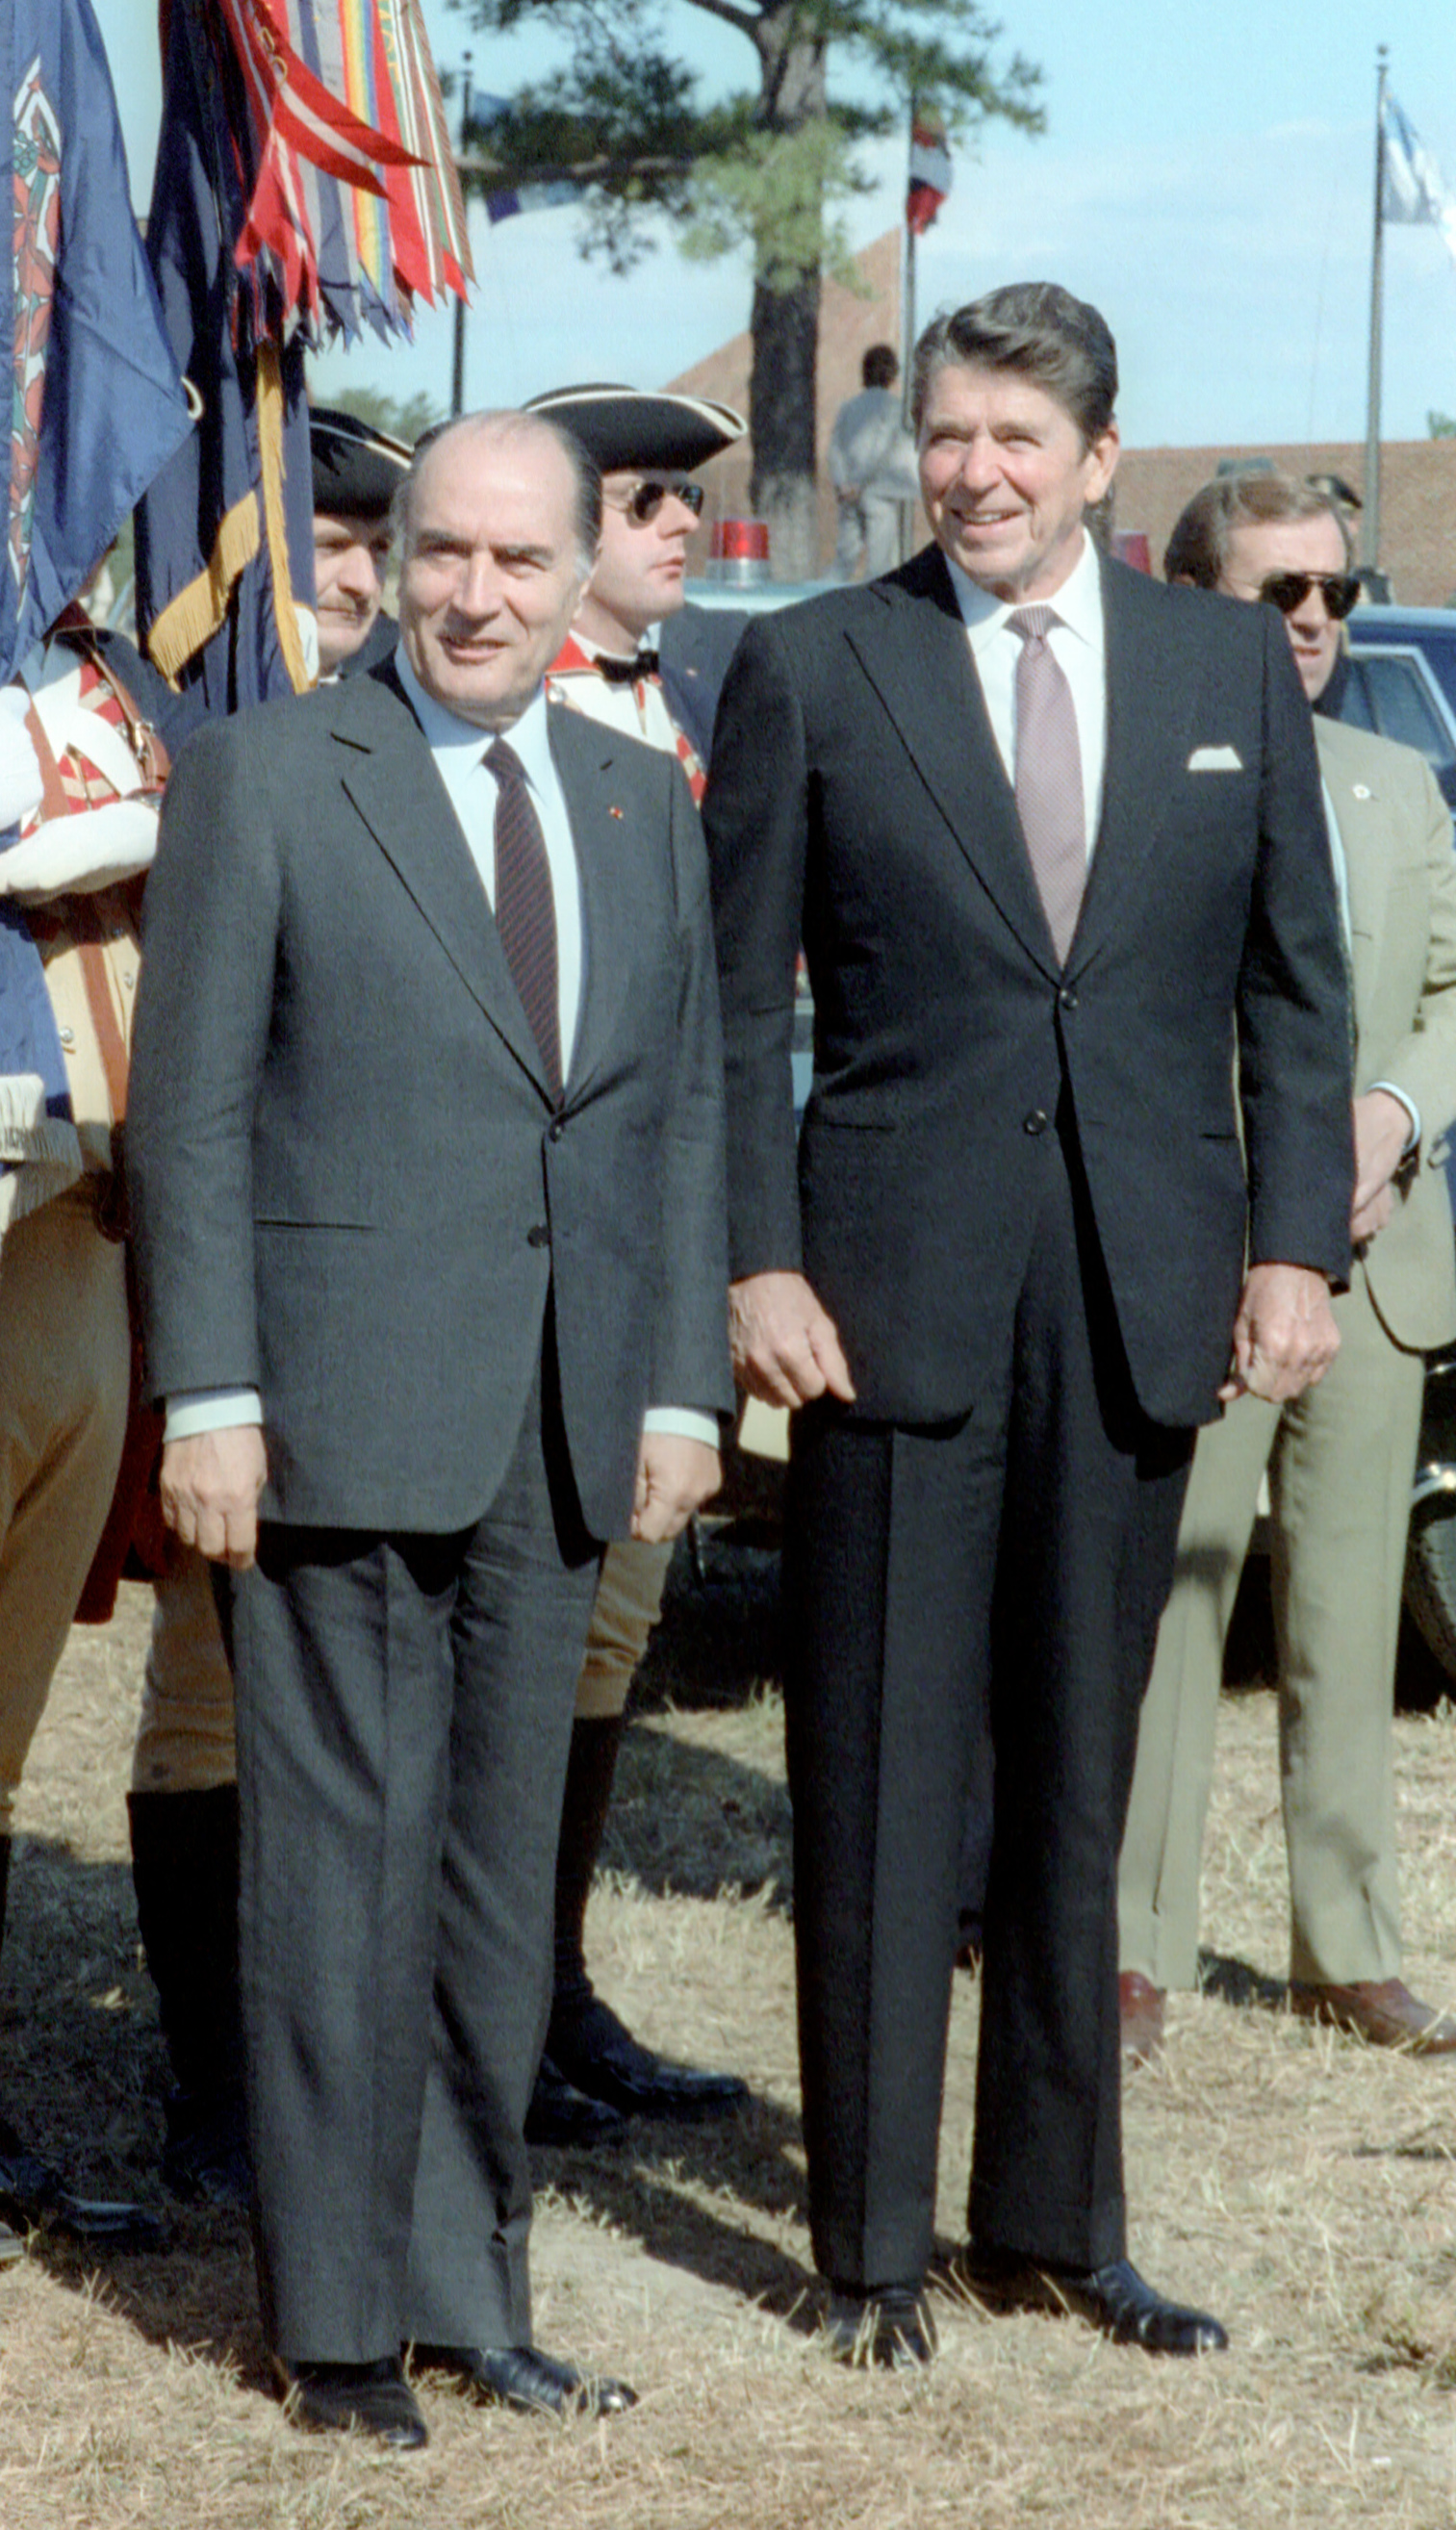 http://commons.wikipedia.org/wiki/File:Reagan_Mitterrand_1981.jpg